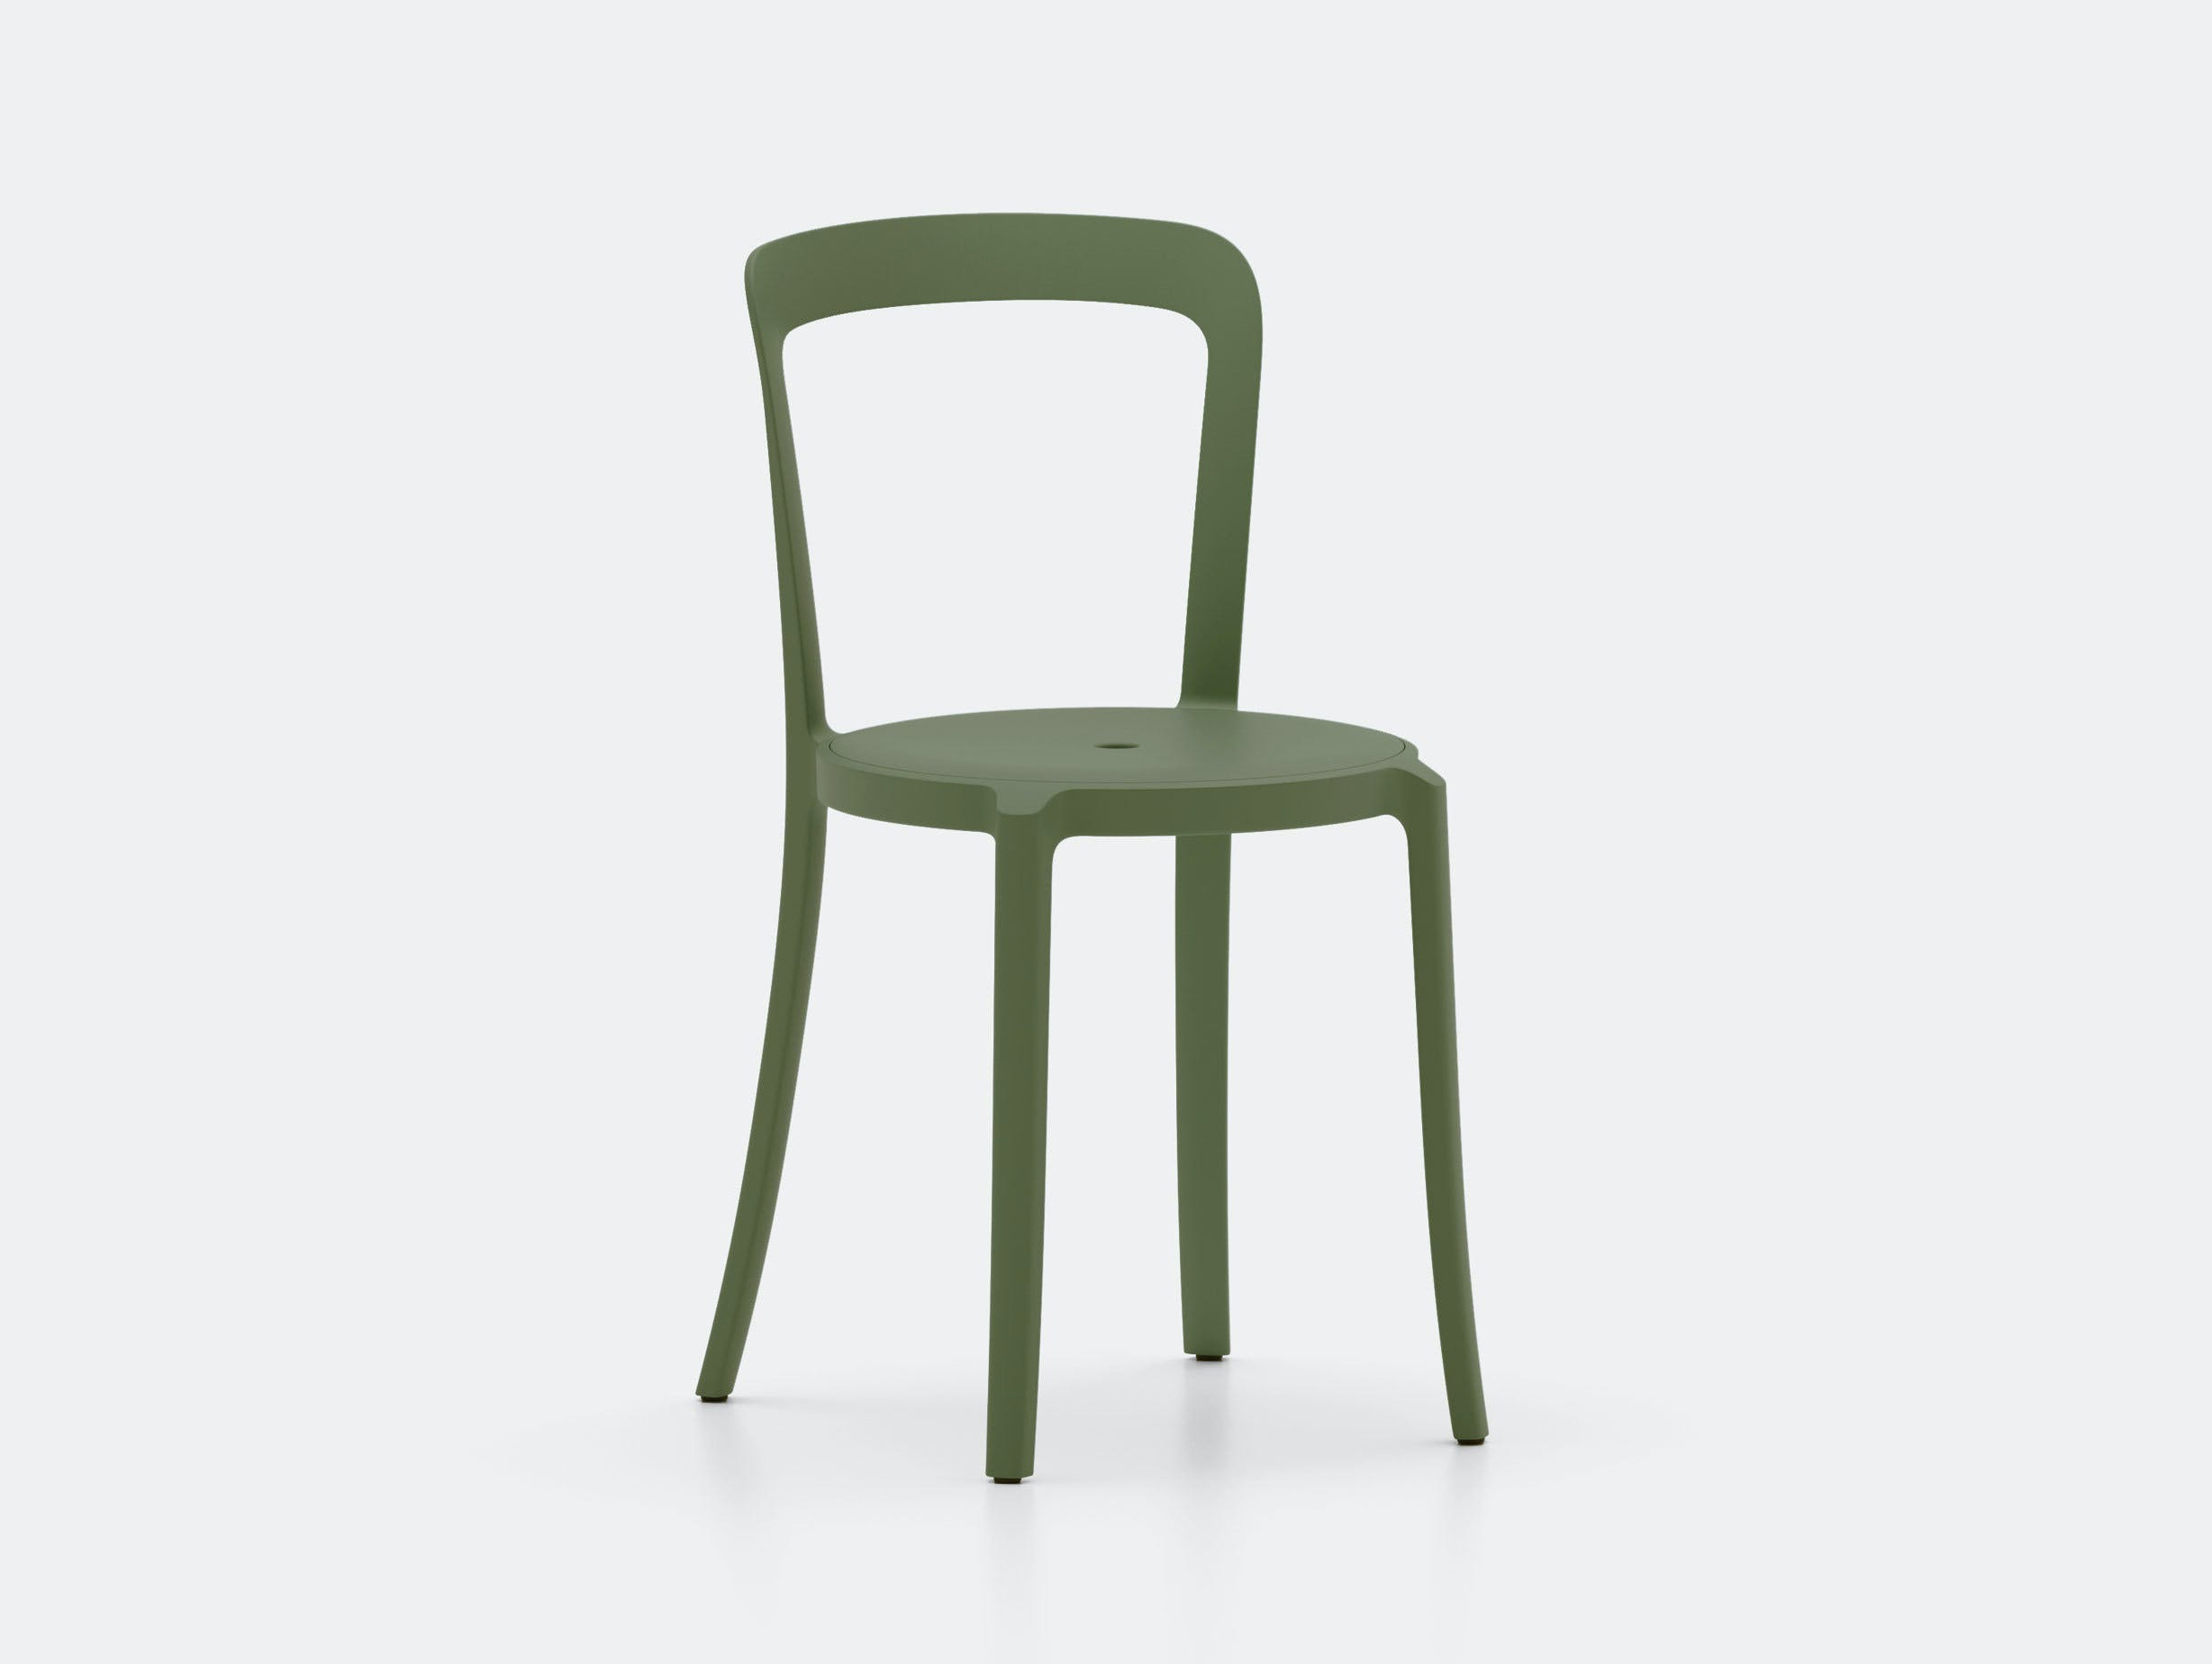 Emeco On and On Chair green Edward Barber Jay Osgerby